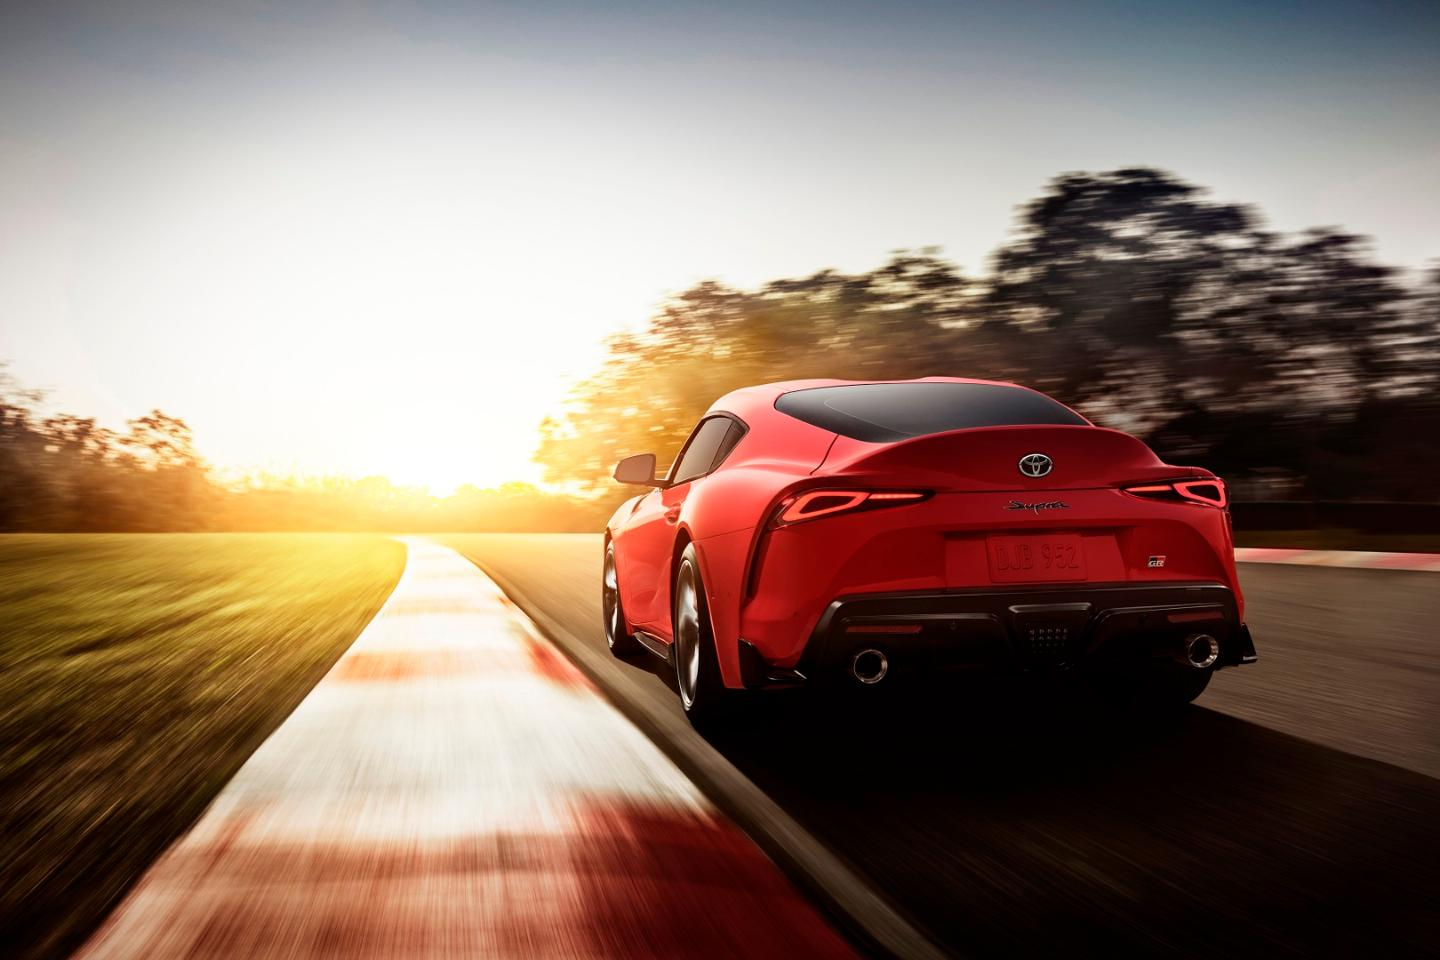 The 2020 Toyota Supra is the first Supra to be produced since 1998